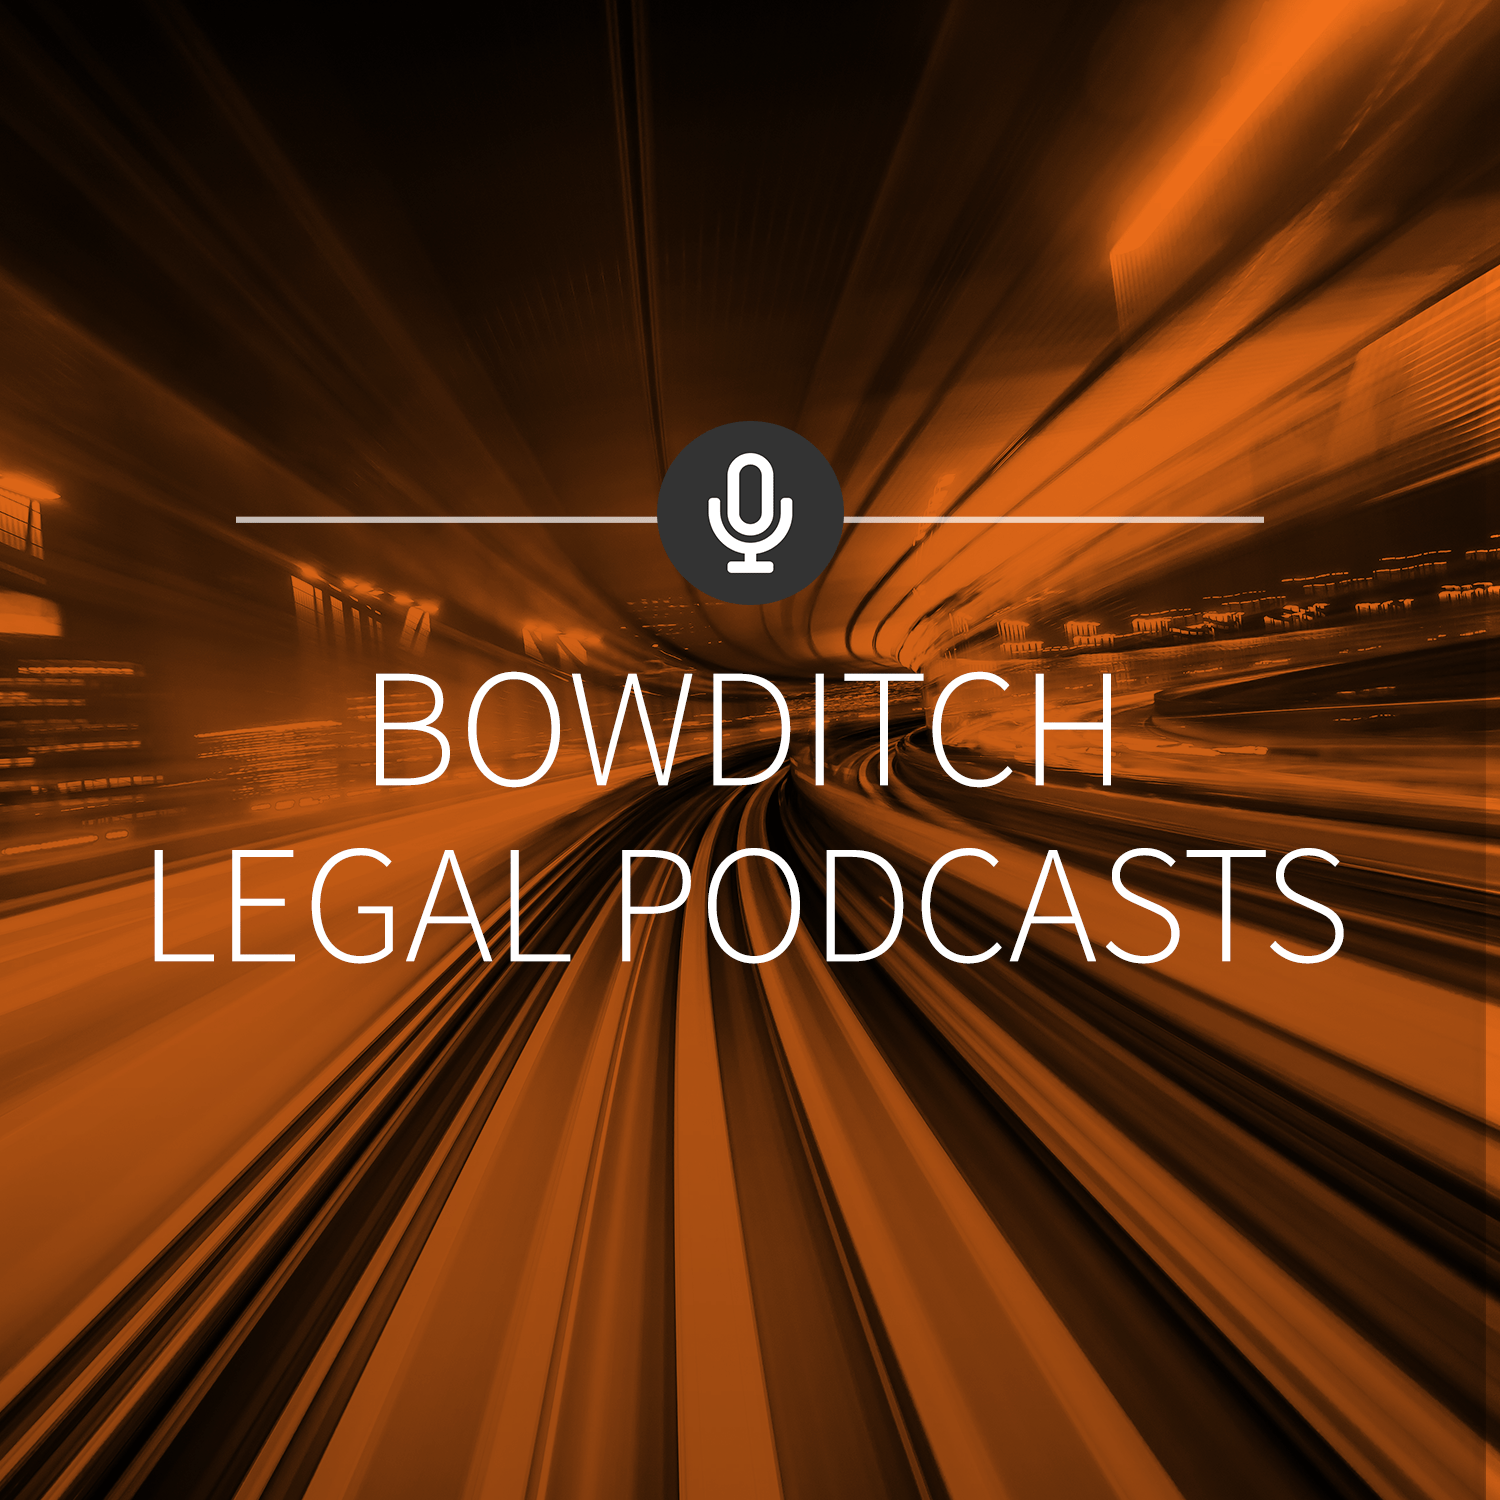 Bowditch Legal Podcasts